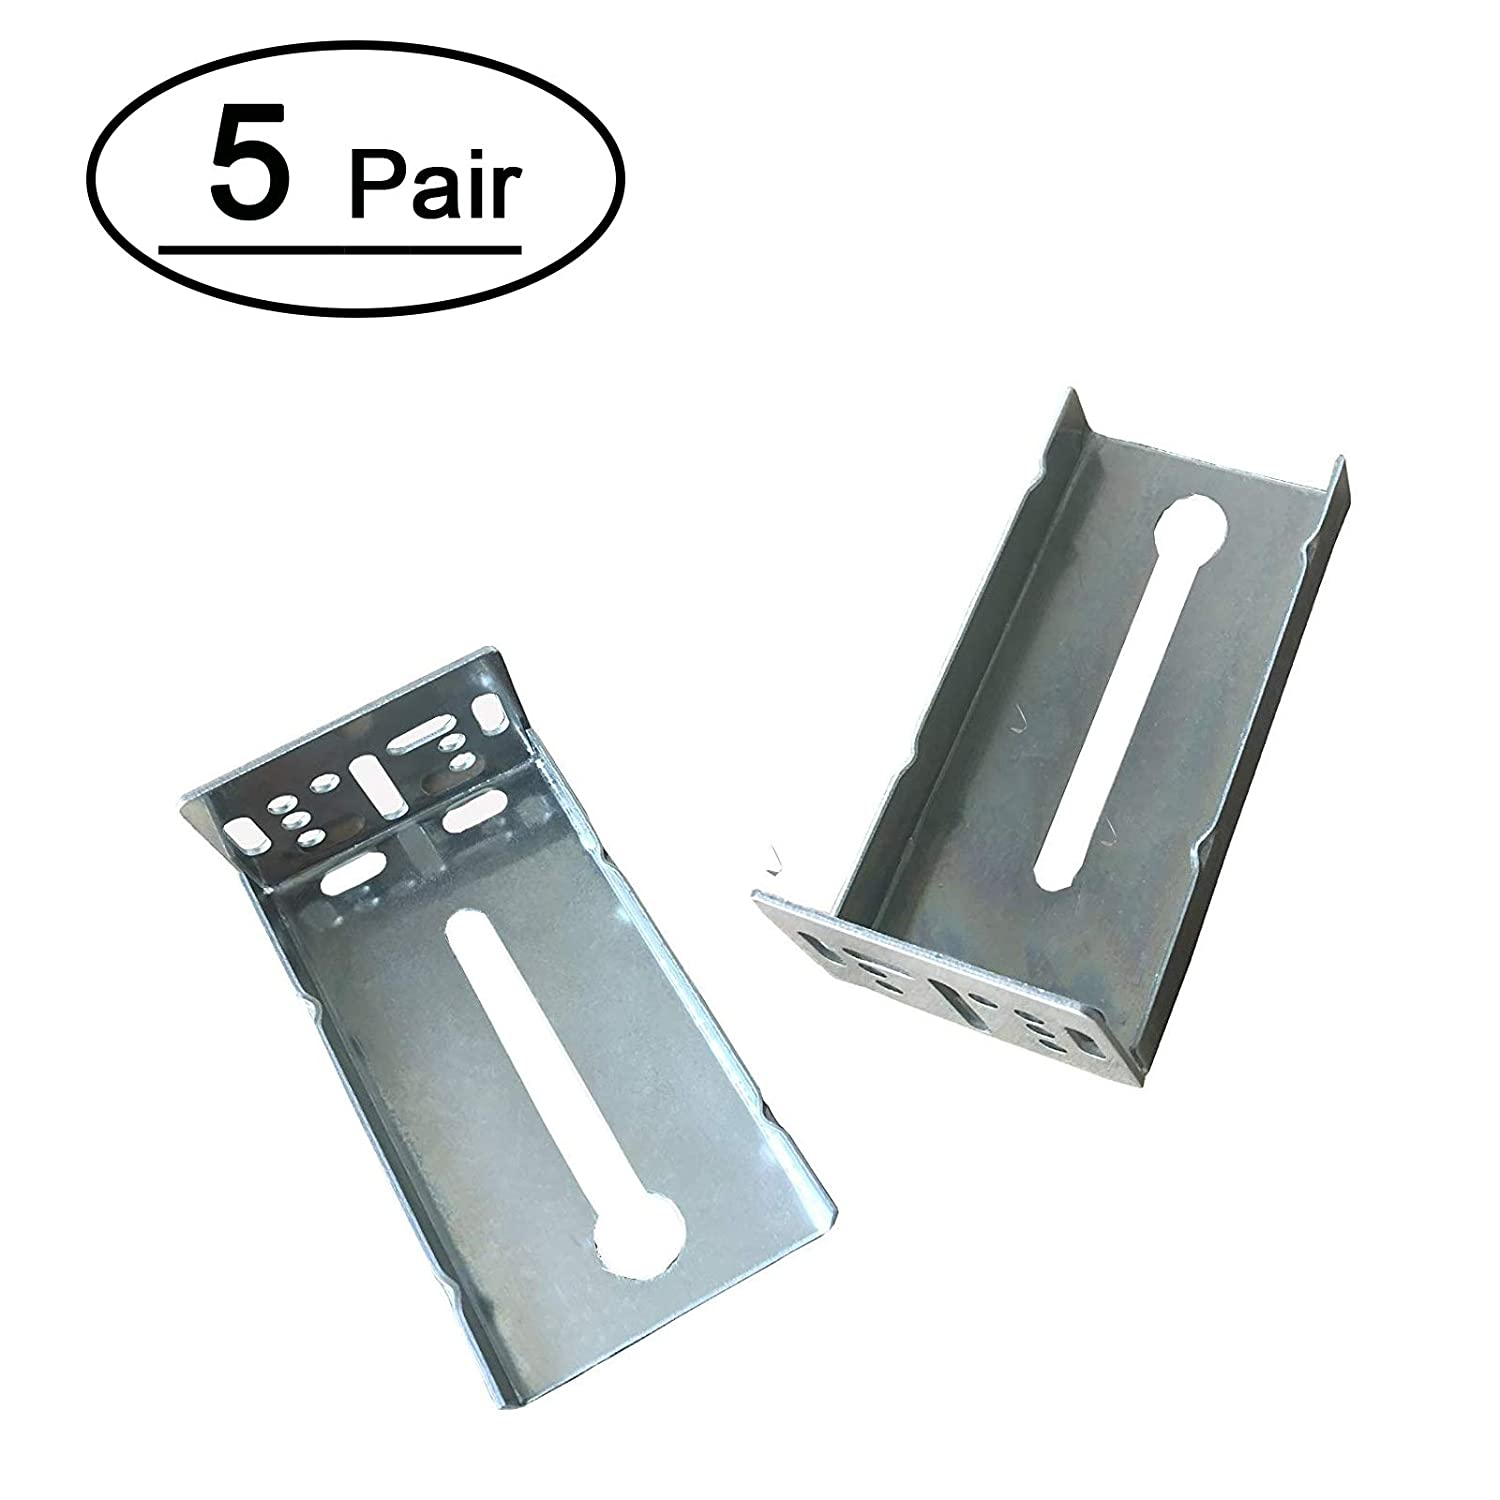 5 Pairs Rear Mounting Brackets for Drawer Slide - LONTAN B4502 Cabinet Drawer Bracket for Face Frame Cabinets for 1.77 inch(45mm) Width Drawer Gildes